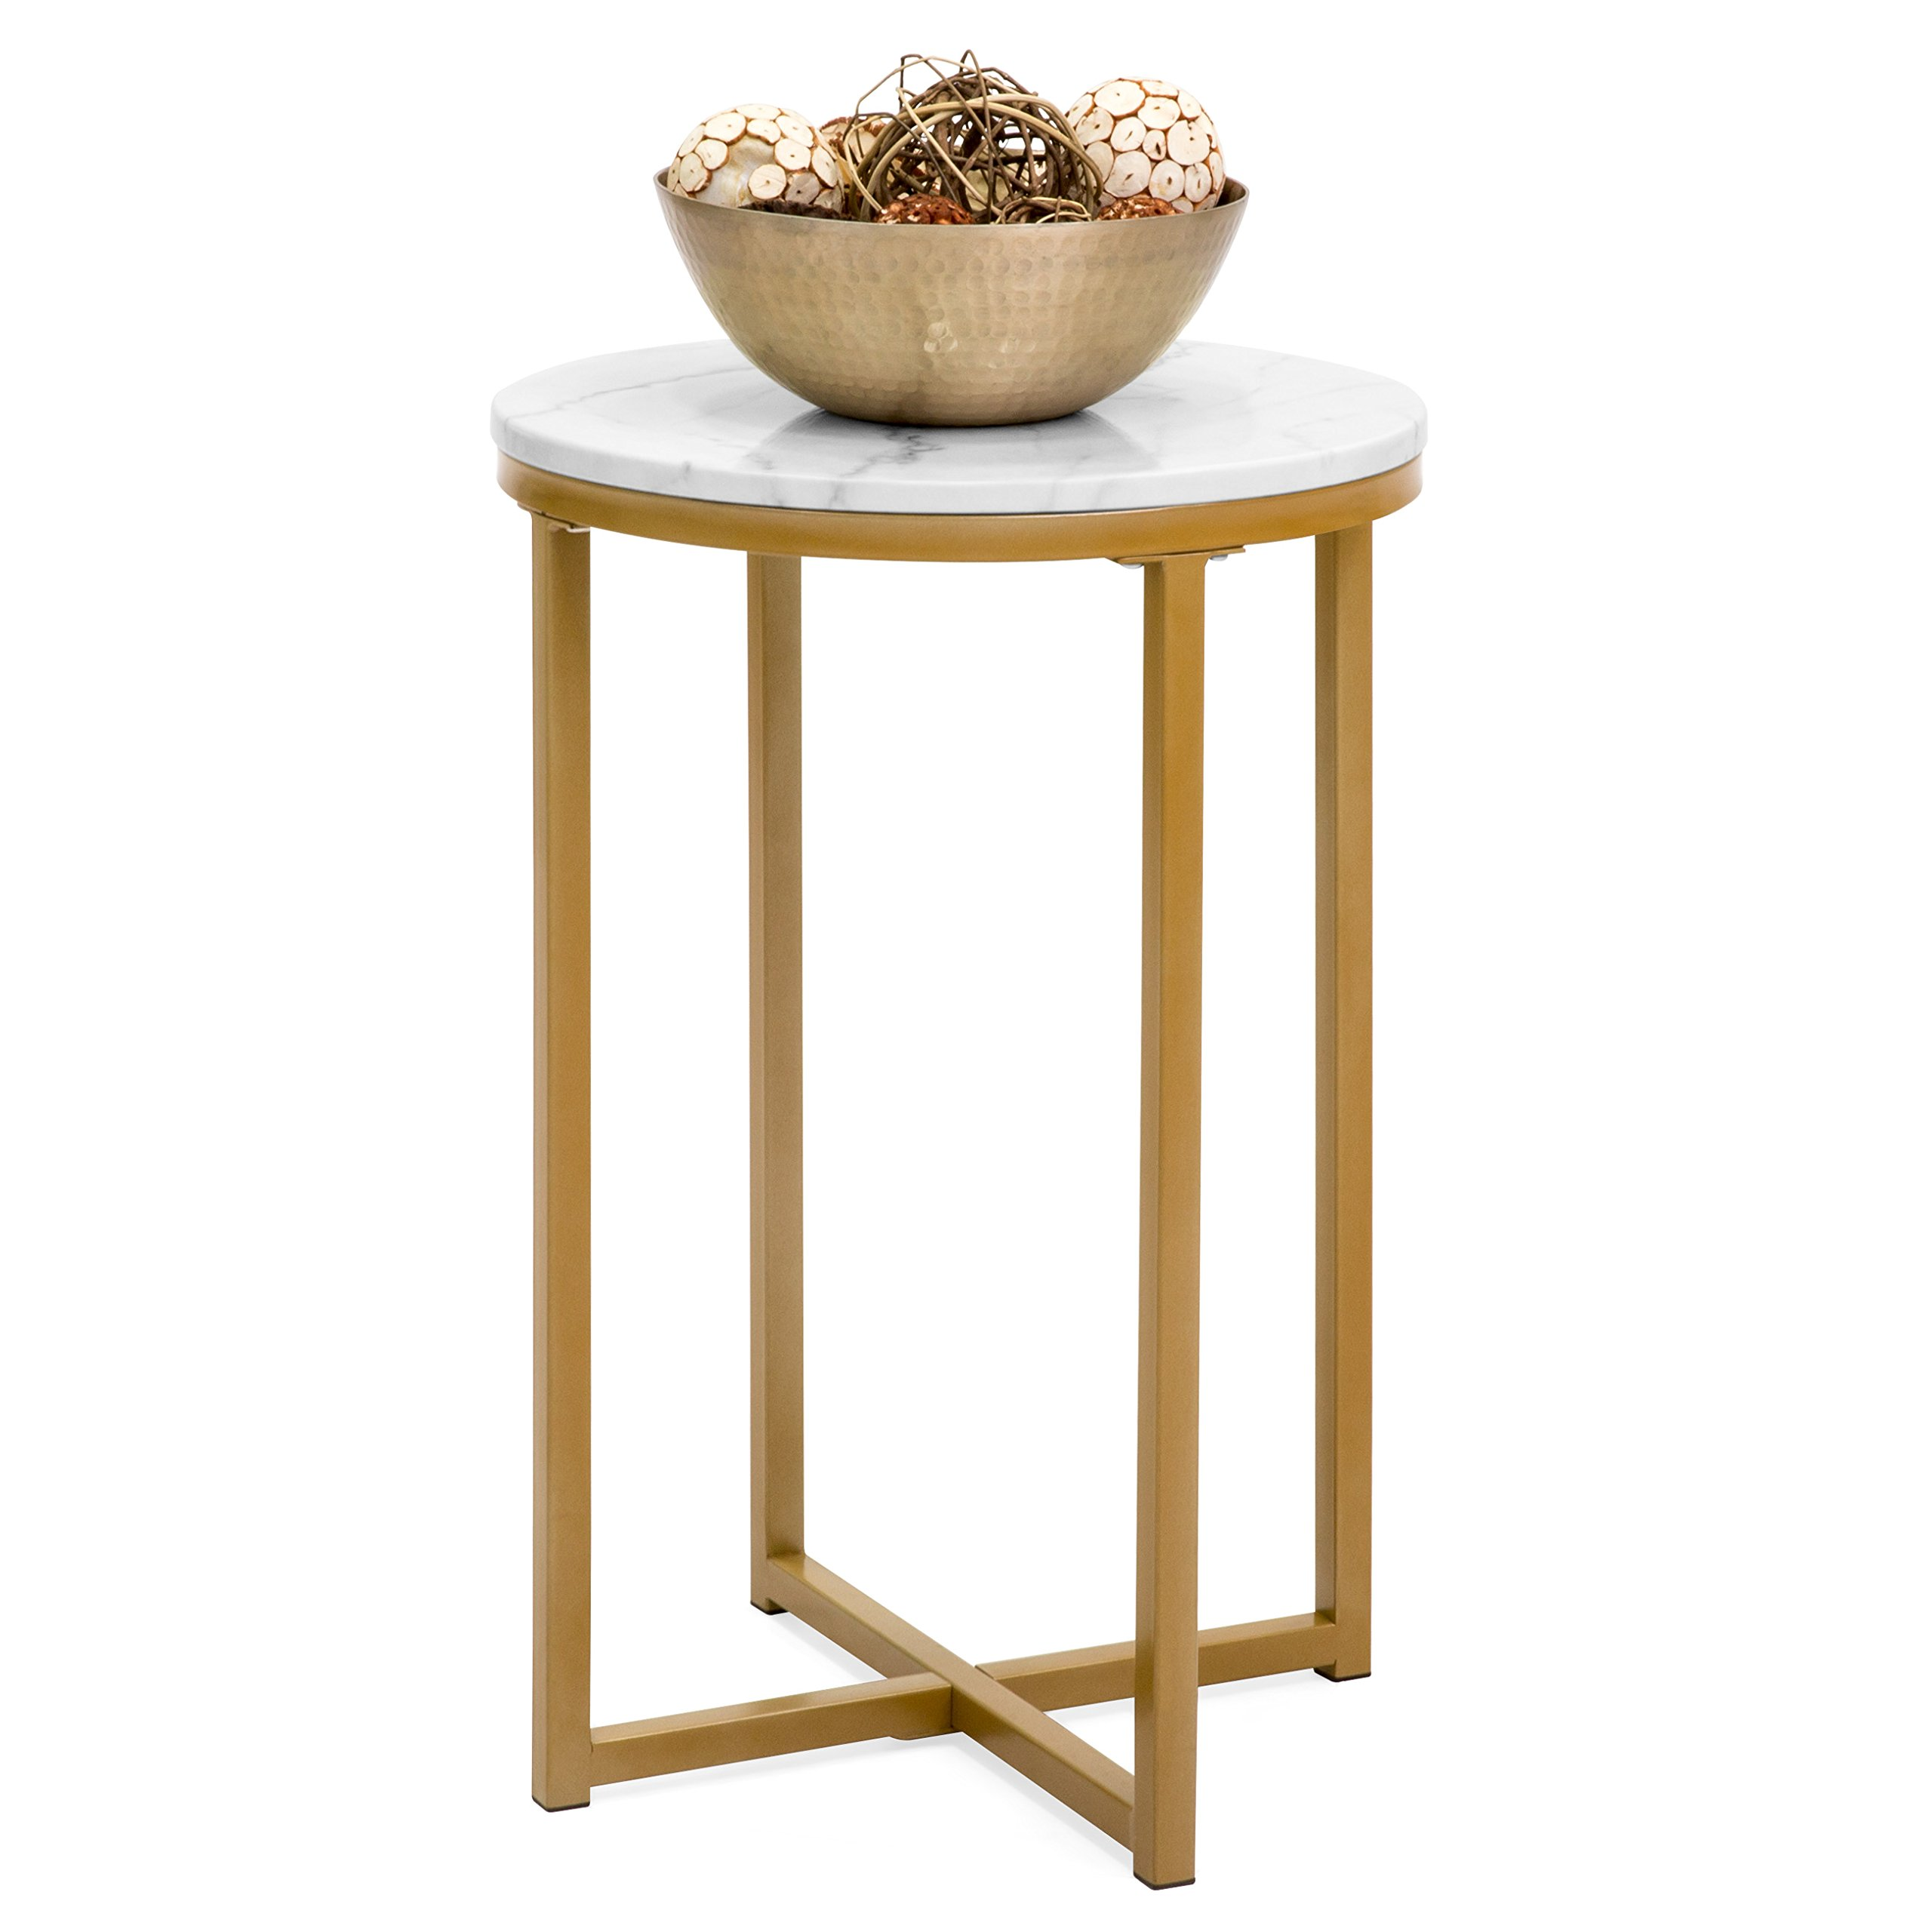 Best Choice Products 16in Faux Marble Modern Living Room Round Side End Accent Coffee Table Nightstand w/Metal Frame, White/Gold by Best Choice Products